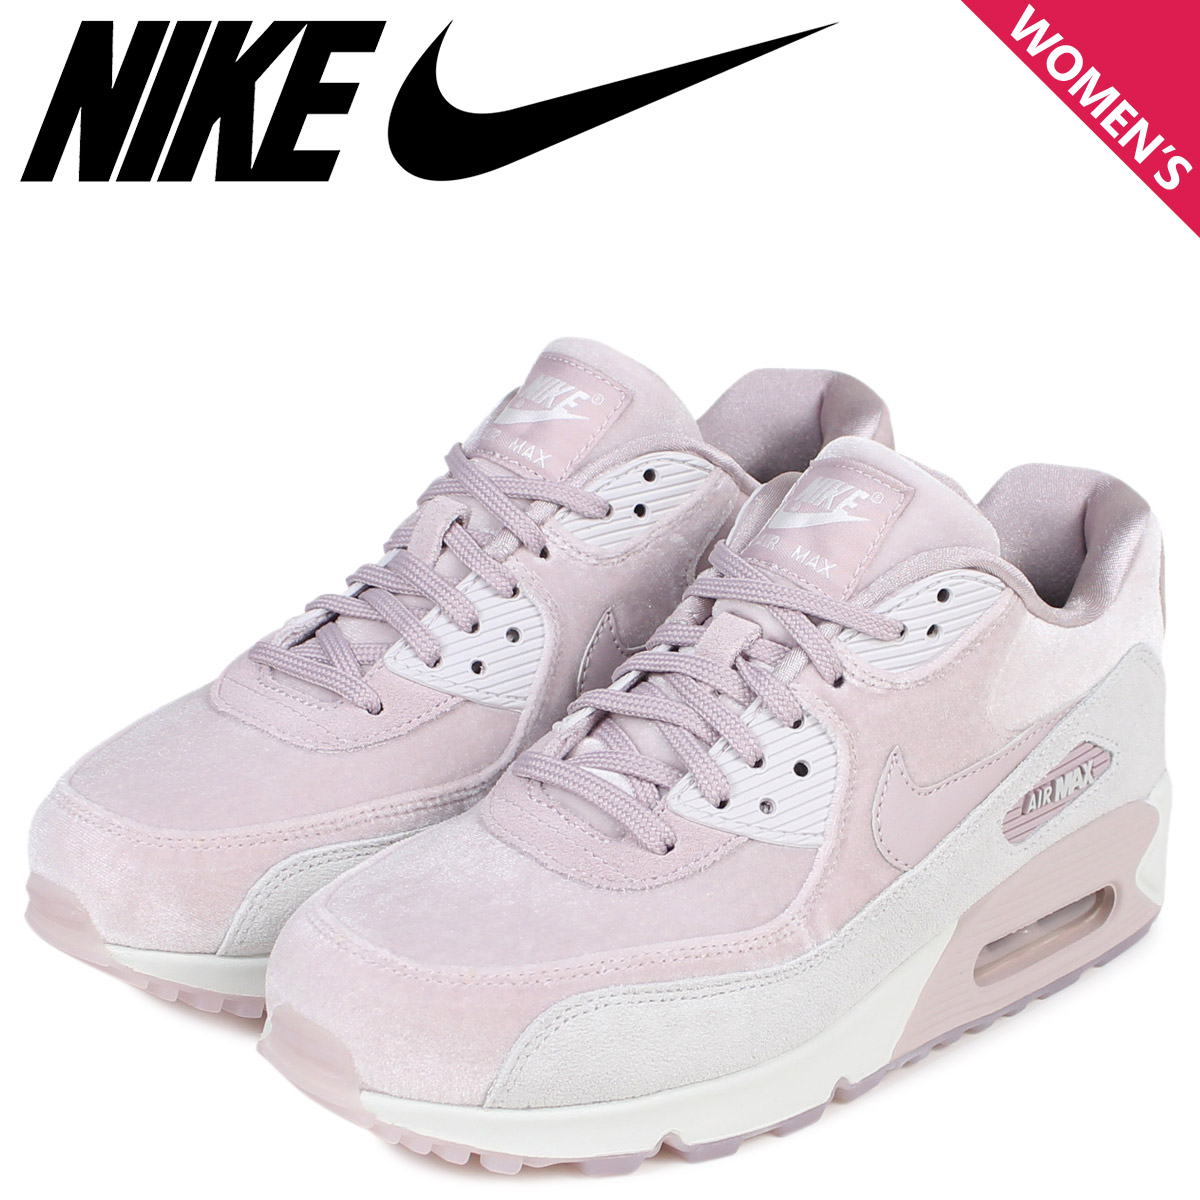 low priced d9fb1 d8218 NIKE Kie Ney AMAX 90 Lady's sneakers WMNS AIR MAX 90 LX 898,512-600 shoes  pink